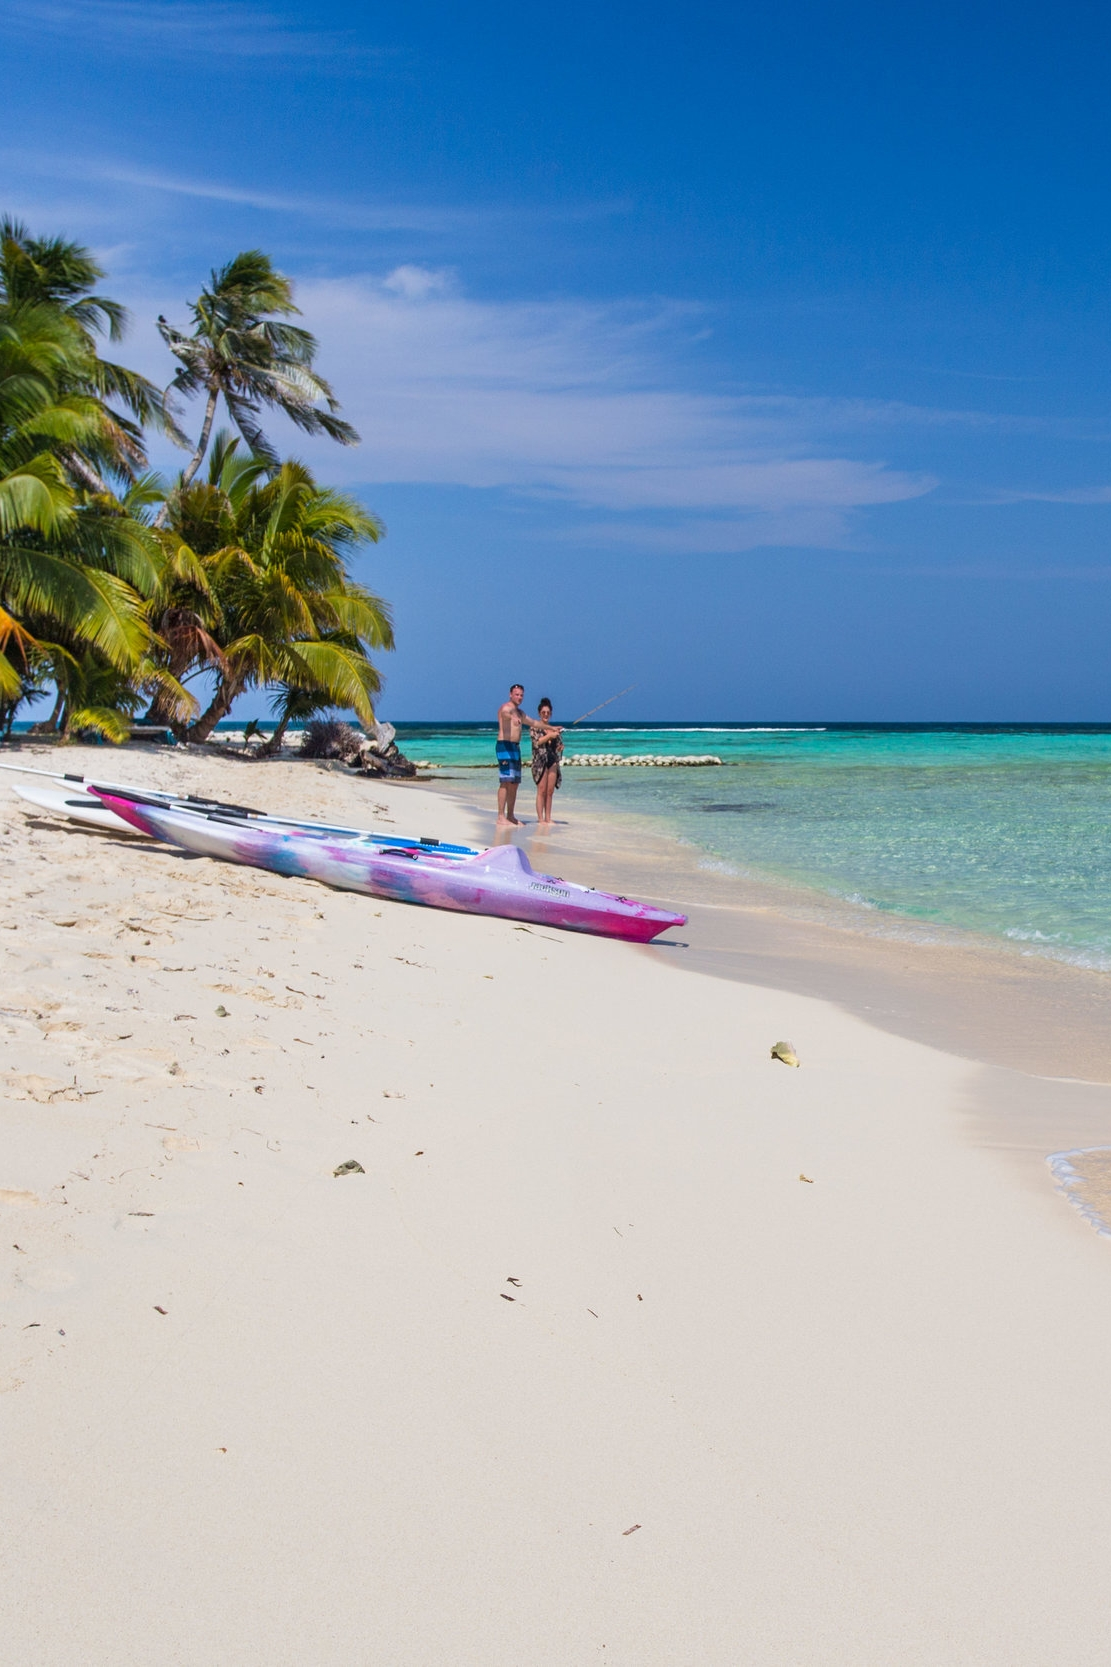 Ranguana Caye - Take an hour boat ride to a picture-perfect 2-acre private island and spend your day in a pristine tropical paradise. Paddle board, kayak, hammock nap, sunbathe, fish from shore, drink, eat and play beach games.